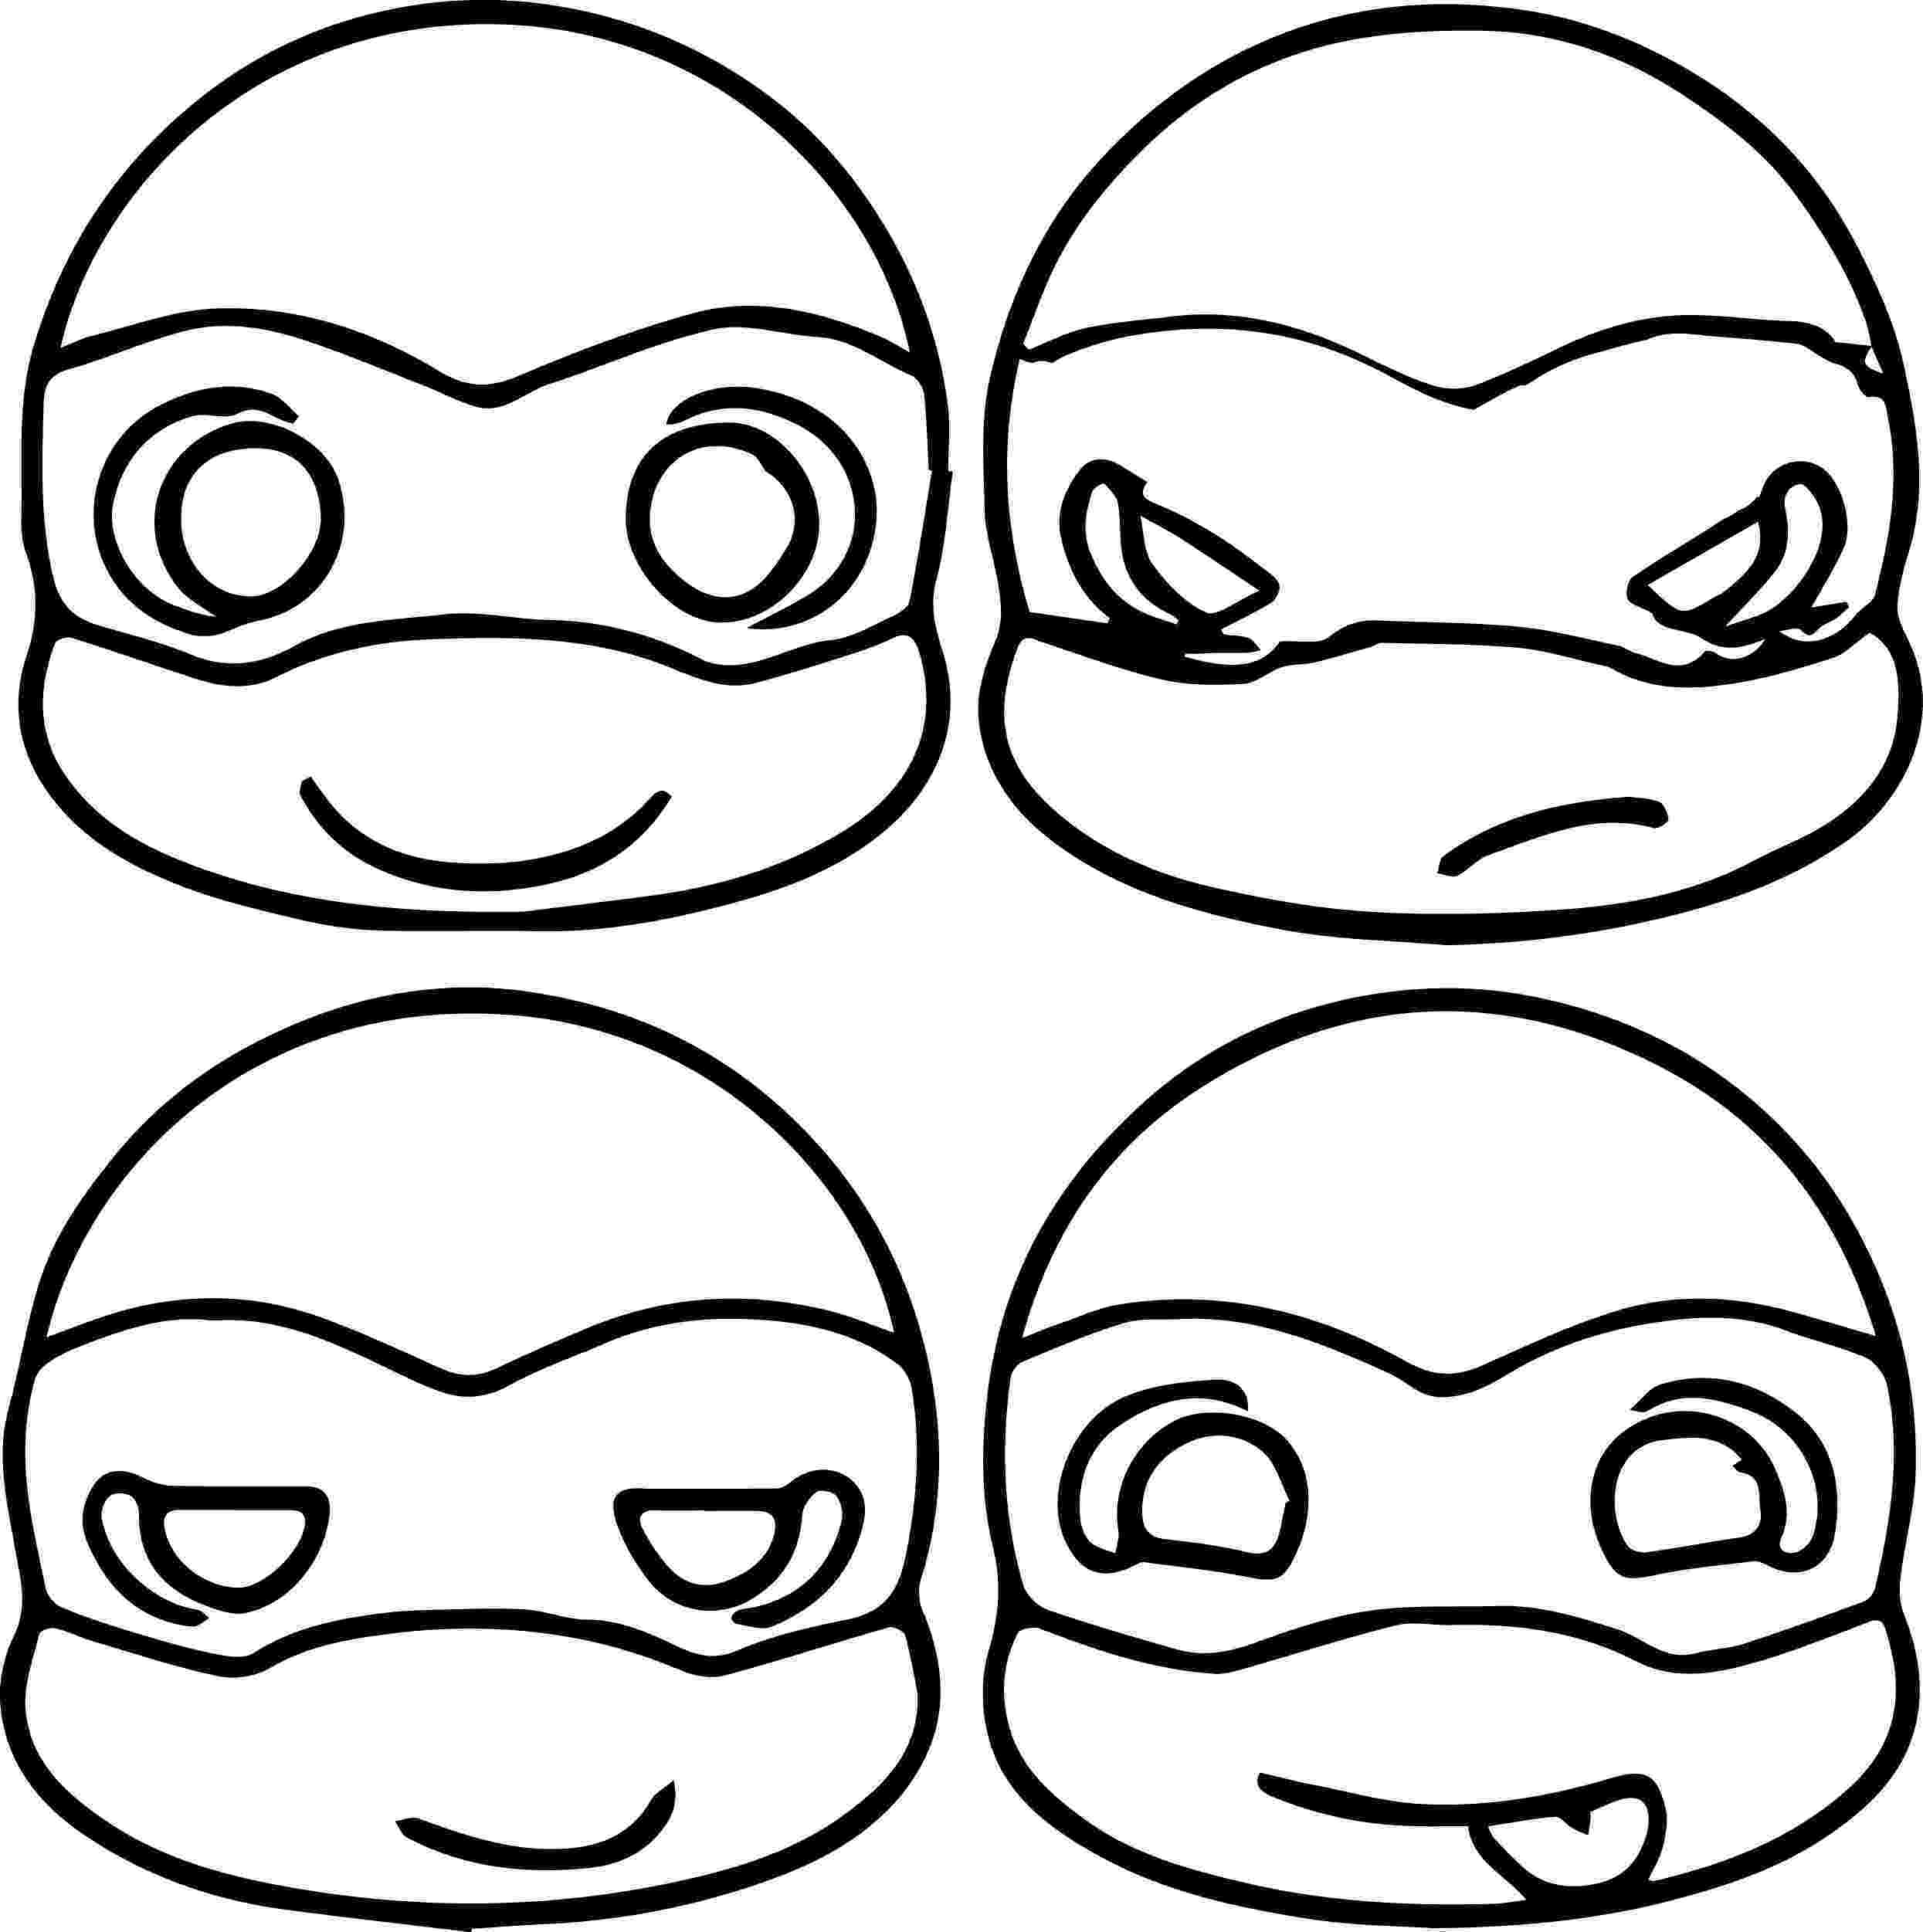 coloring pages ninja ninja coloring pages free download on clipartmag ninja pages coloring